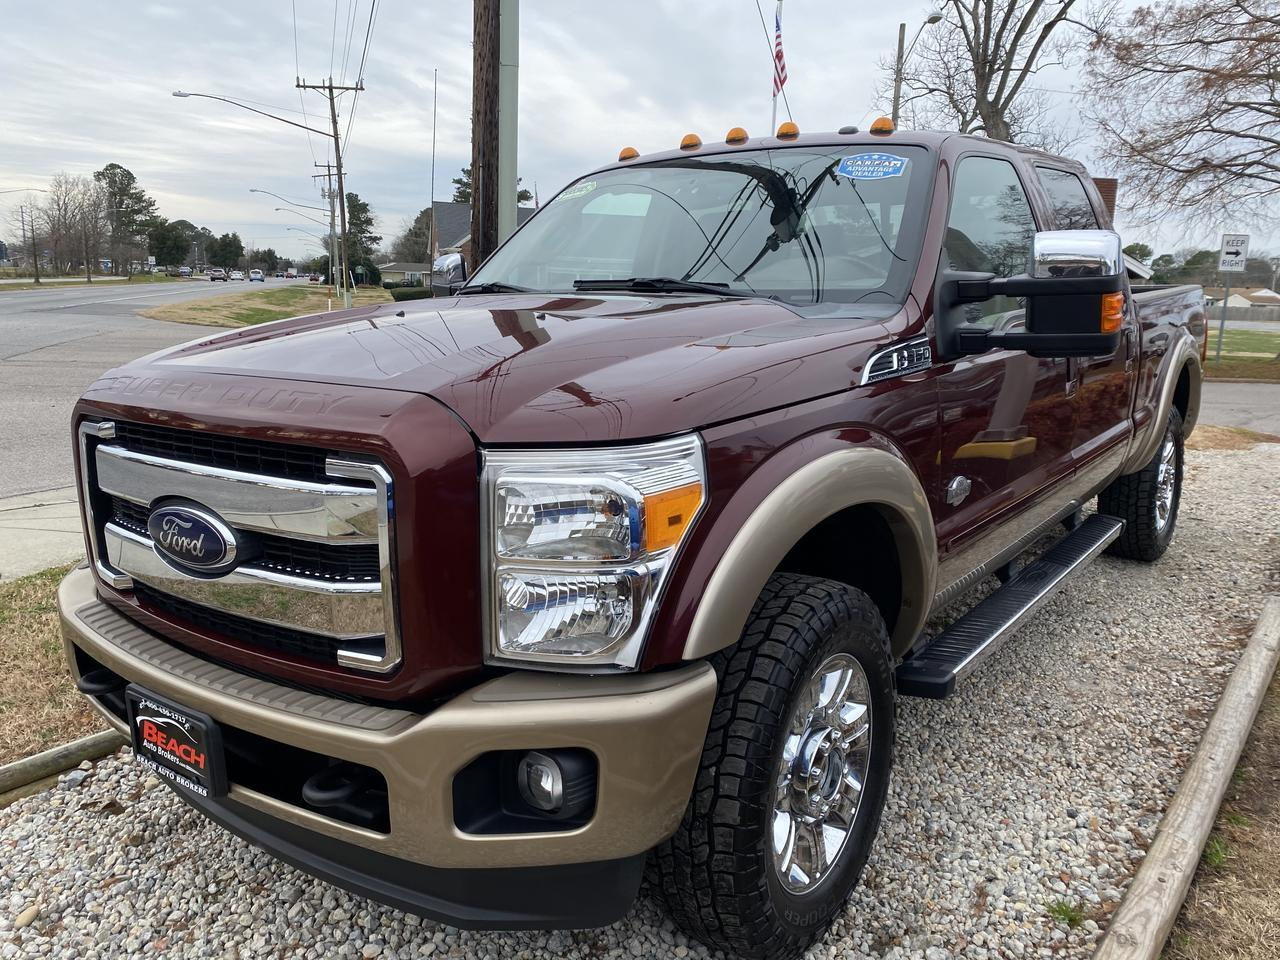 2012 FORD F-350 KING RANCH CREW CAB 4X4, WARRANTY, DIESEL, LEATHER, NAV, SUNROOF, HEATED/COOLED SEATS! Norfolk VA